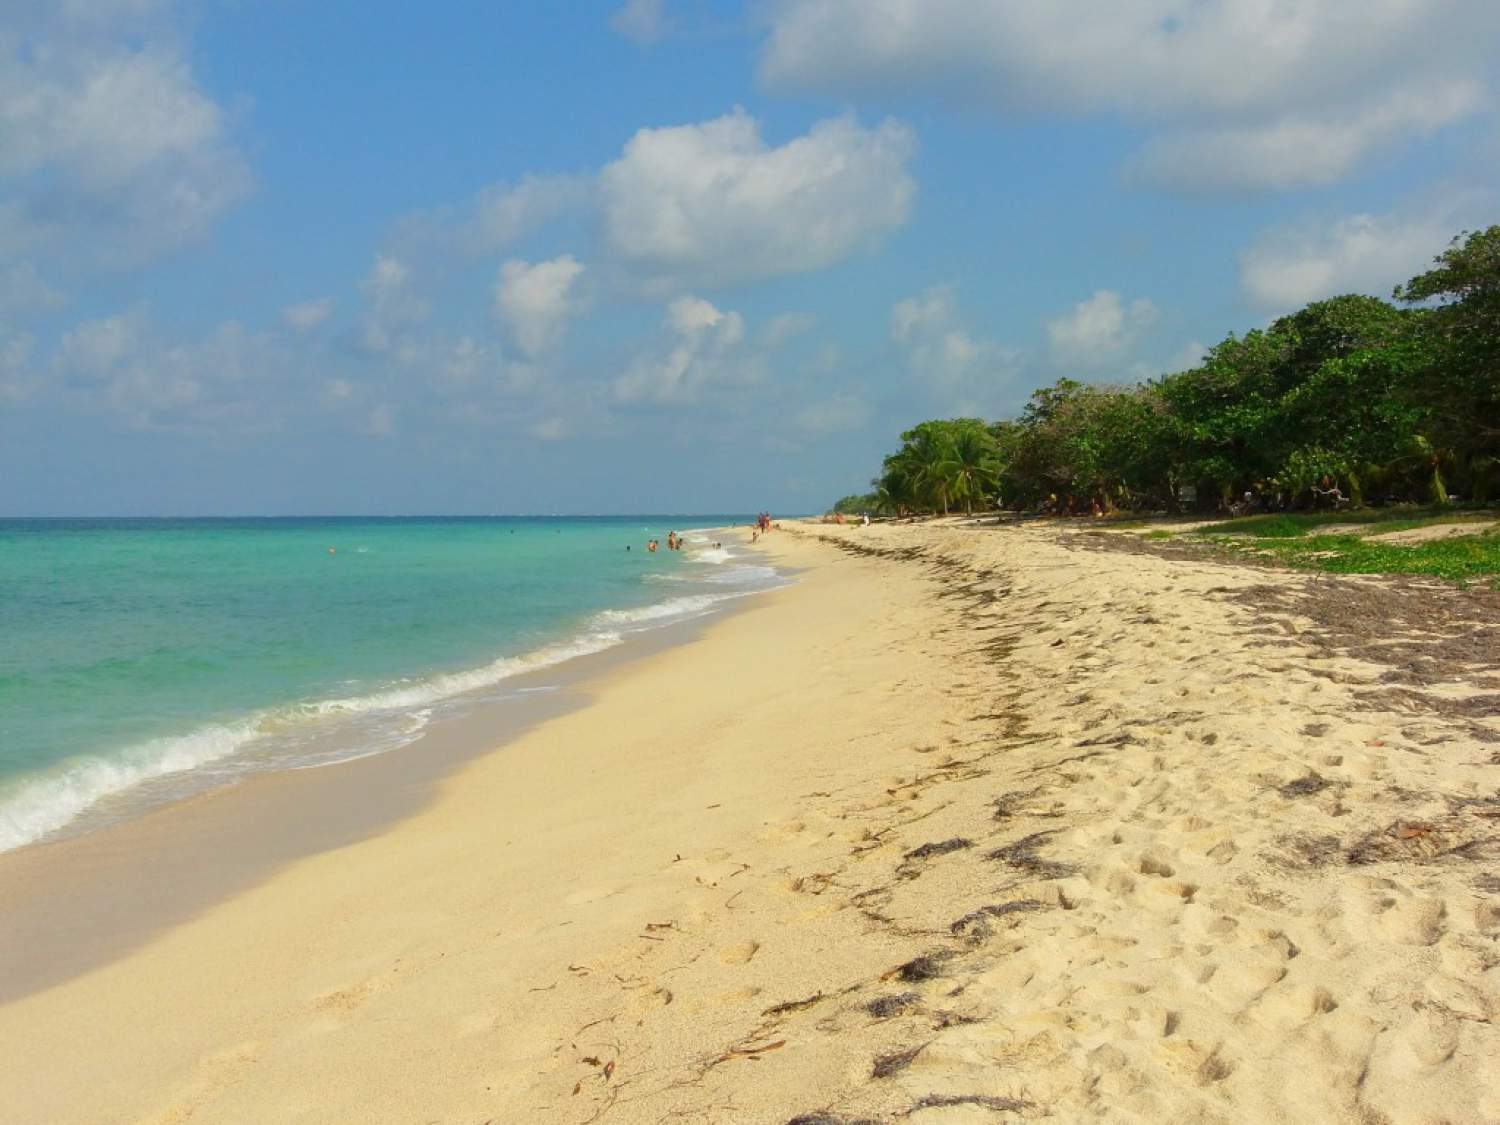 Camp bay beach, Roatan